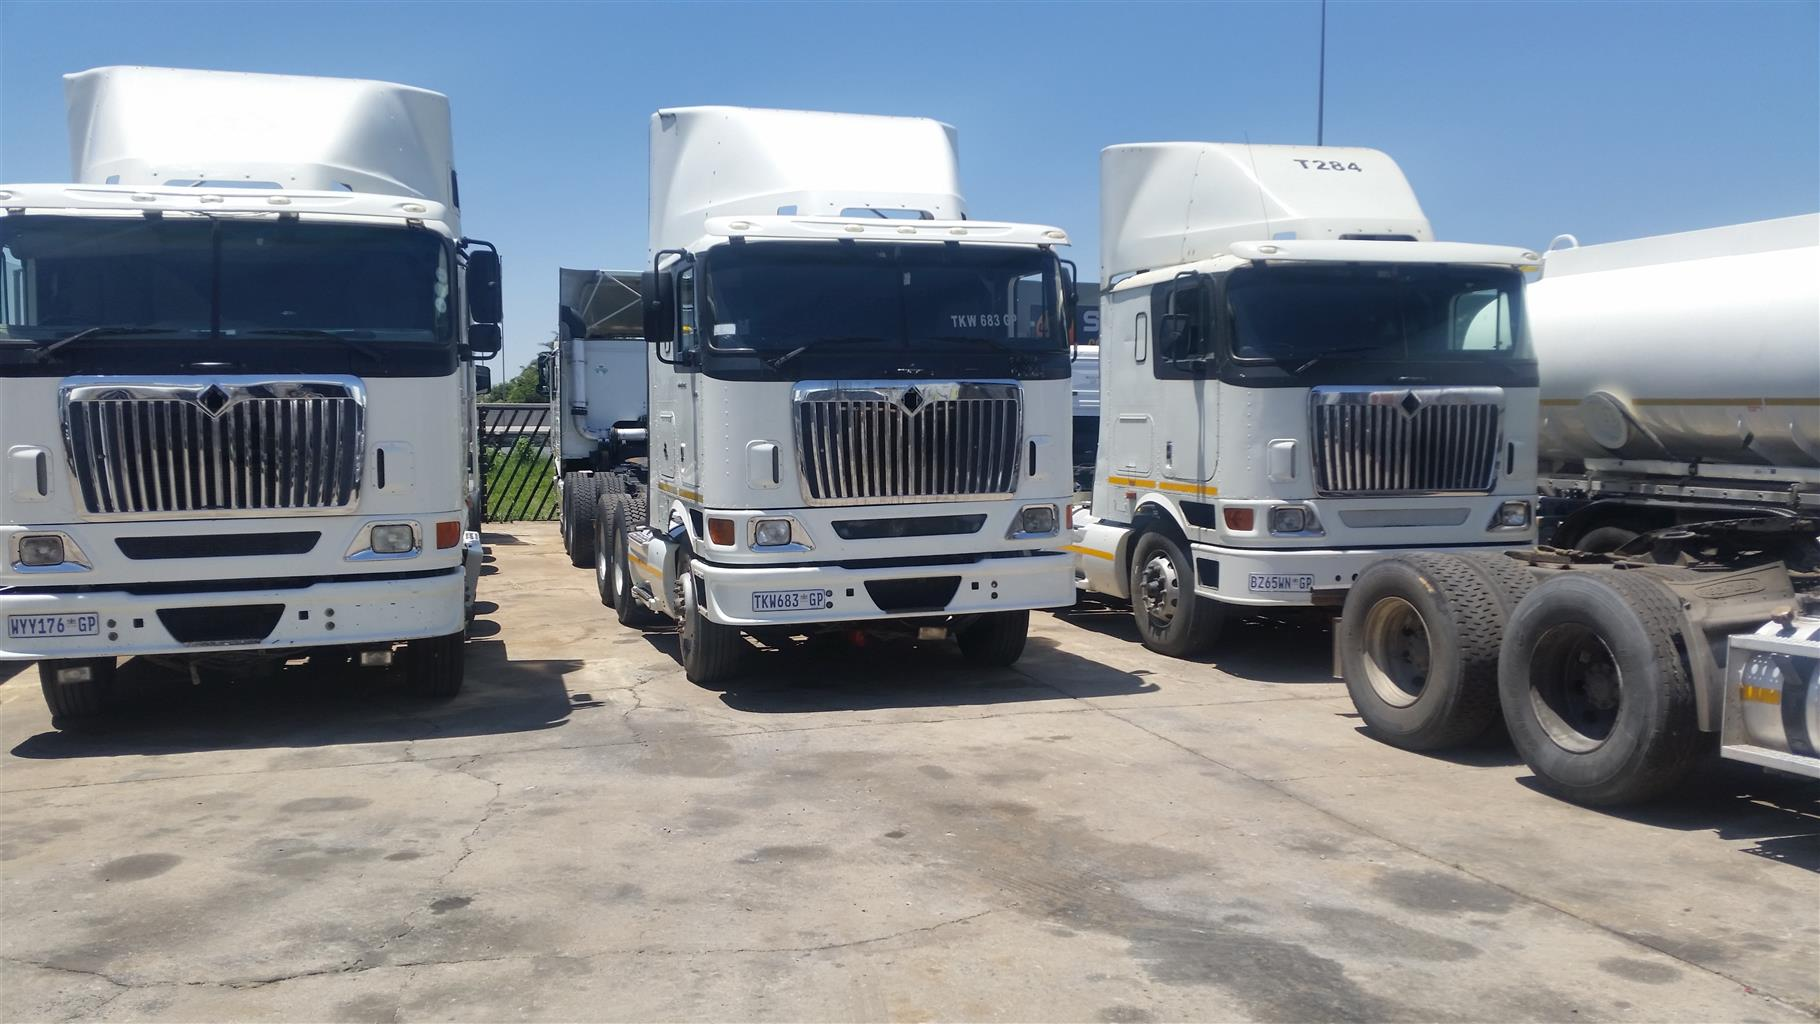 GREAT DEALS ON TRUCKS AND TRAILERS. JOB GUARANTEED WHEN BUYING FROM US.